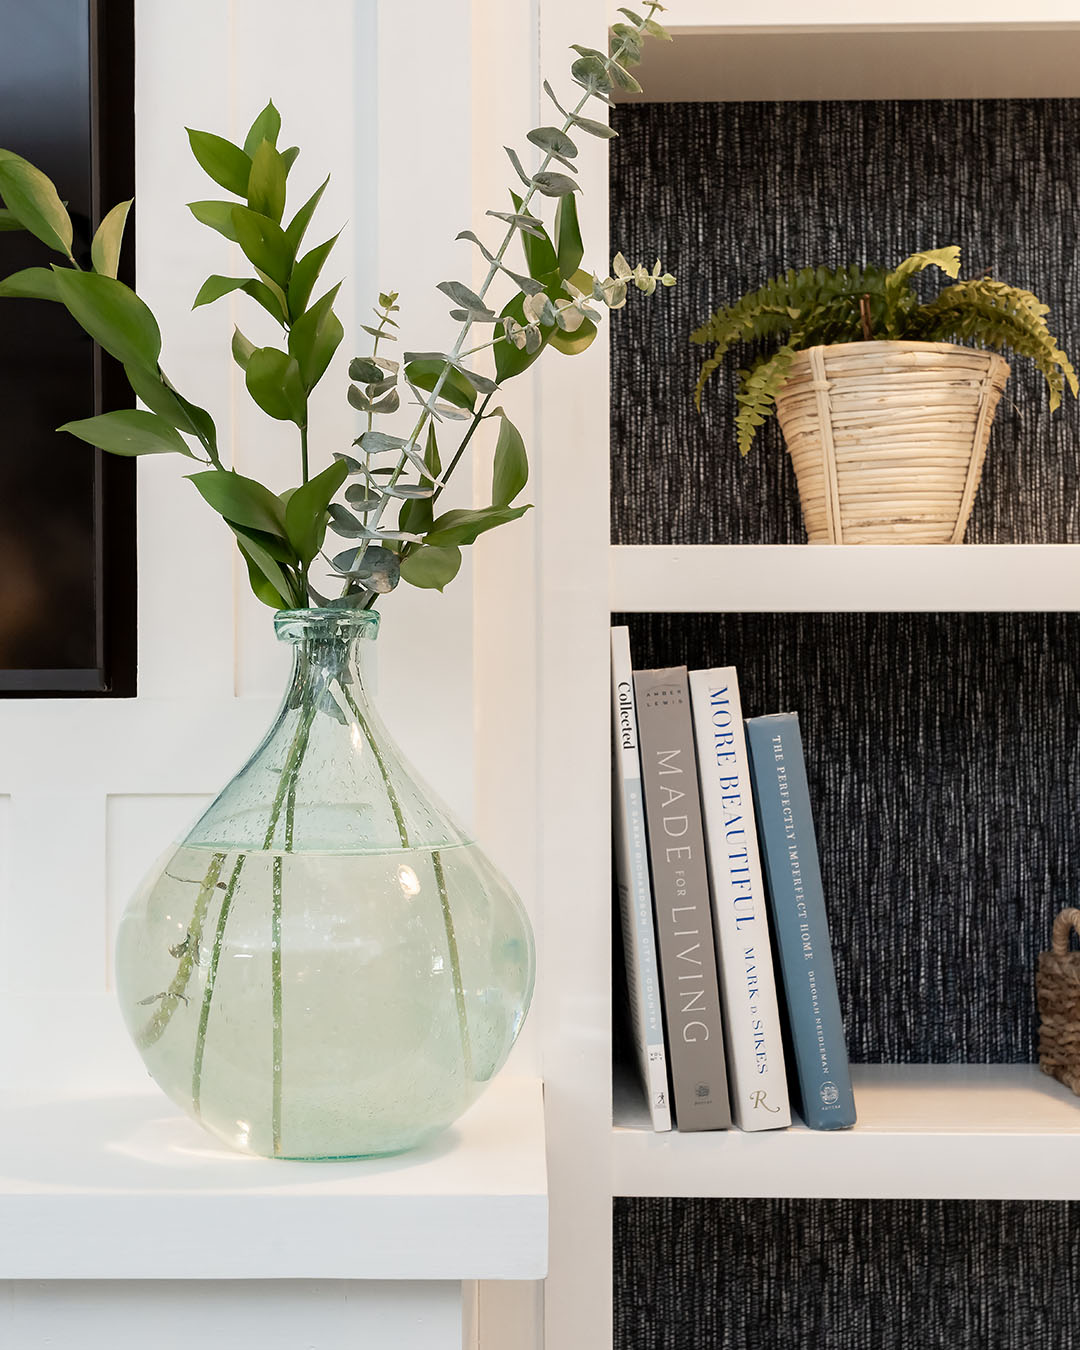 This trick for how to clean a bottle vase is one of the best that I've learned in a long time. It works really well and it's fun too!